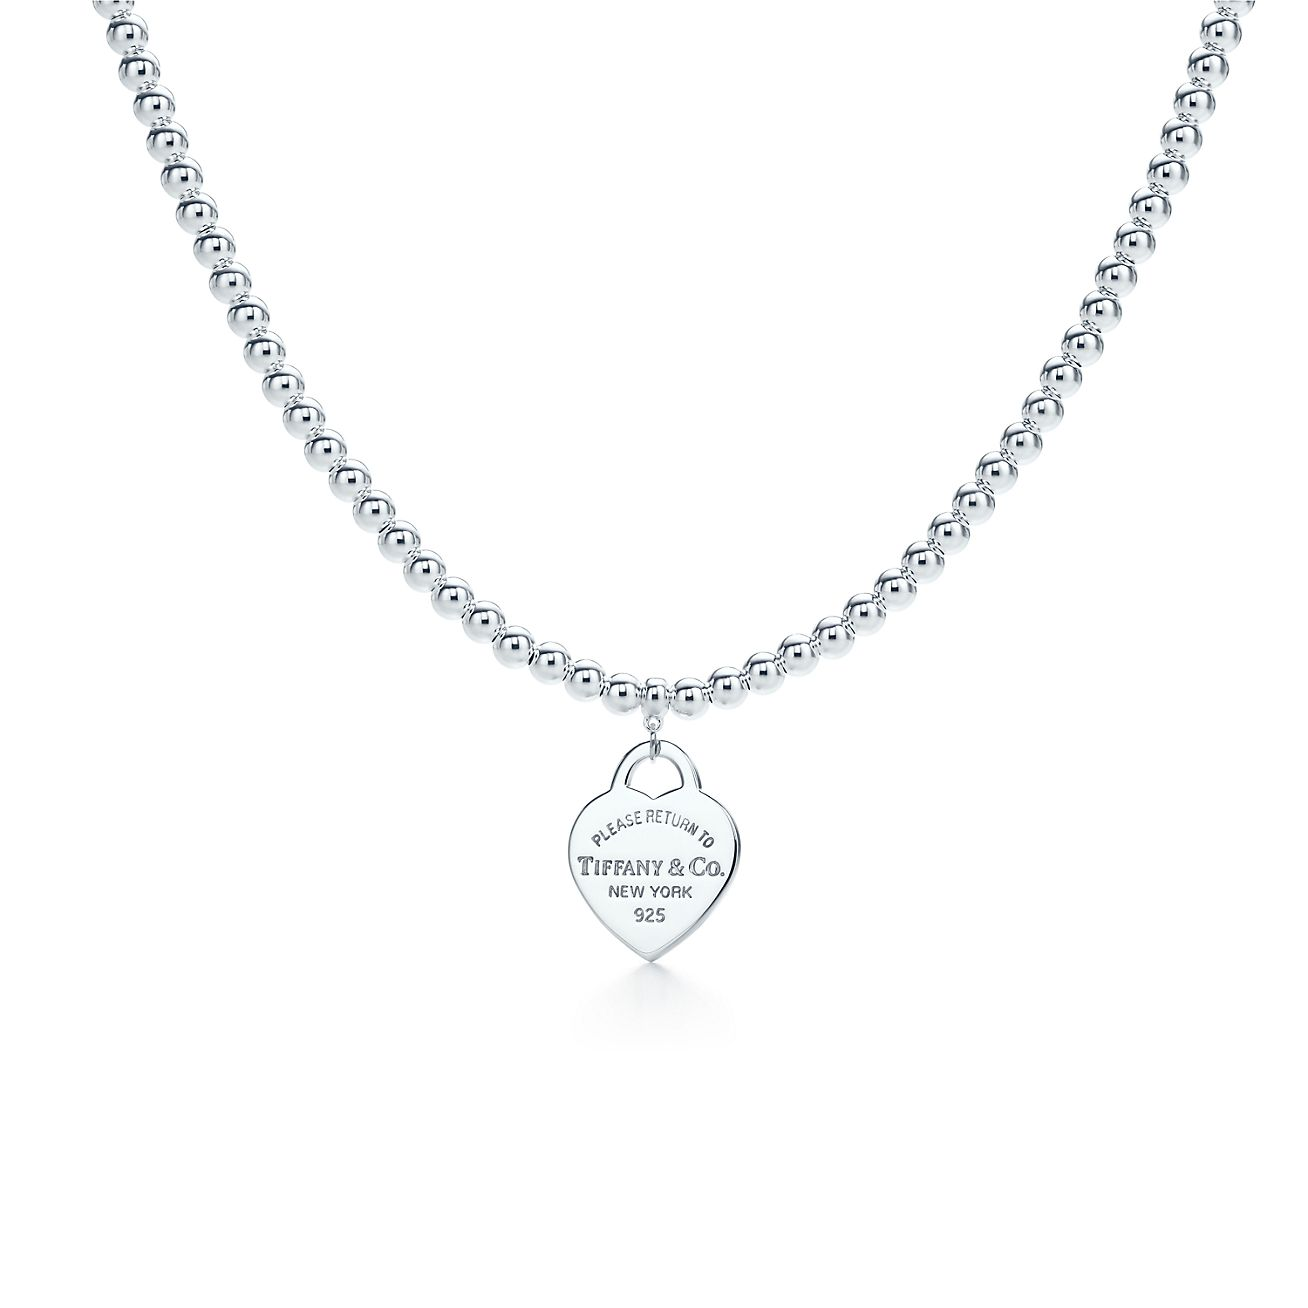 Return to Tiffany small heart tag in sterling silver on a bead necklace - Size 18 in Tiffany & Co.